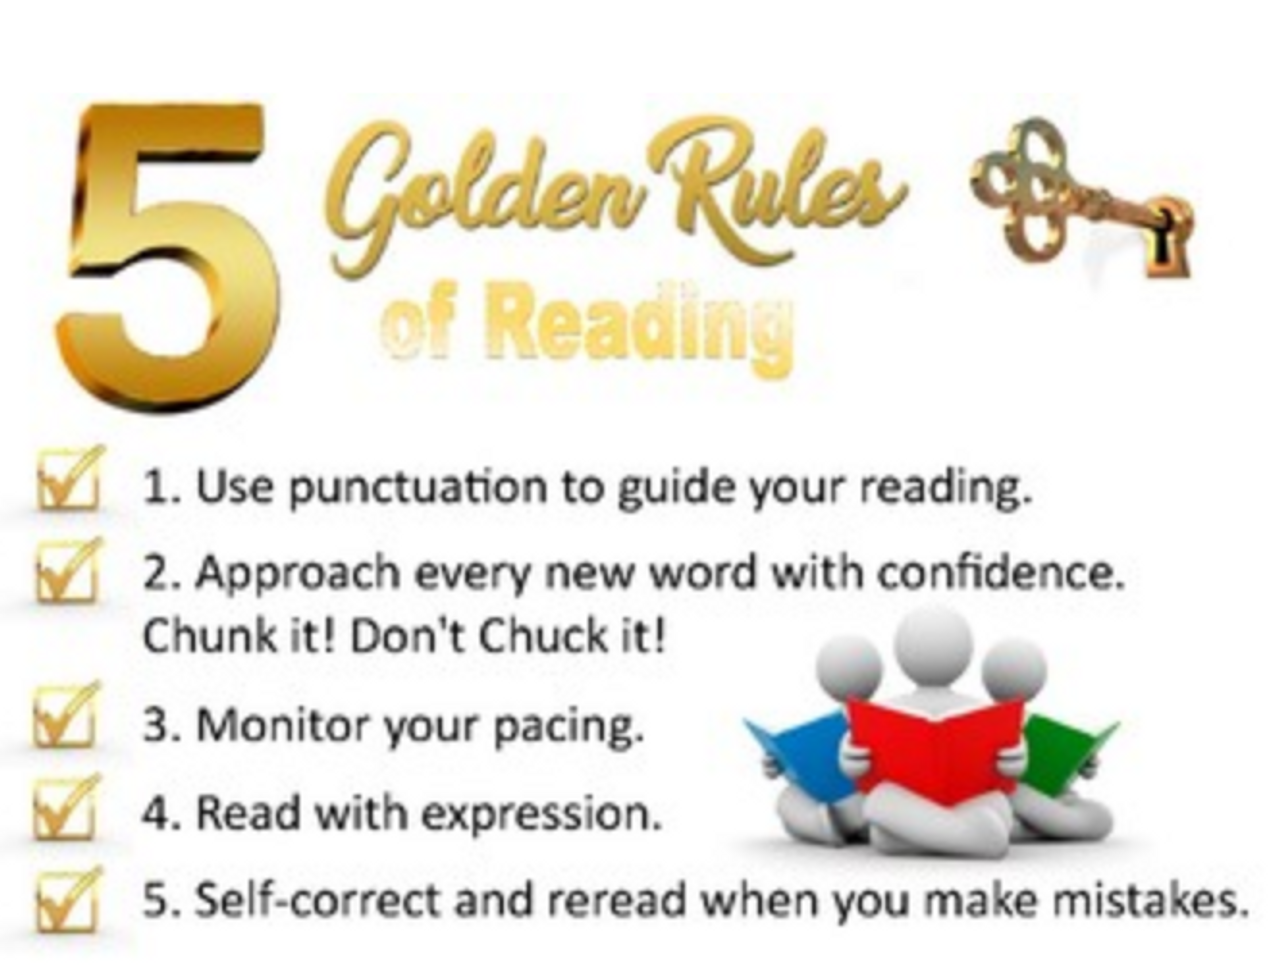 5 Golden Rules of Reading Poster